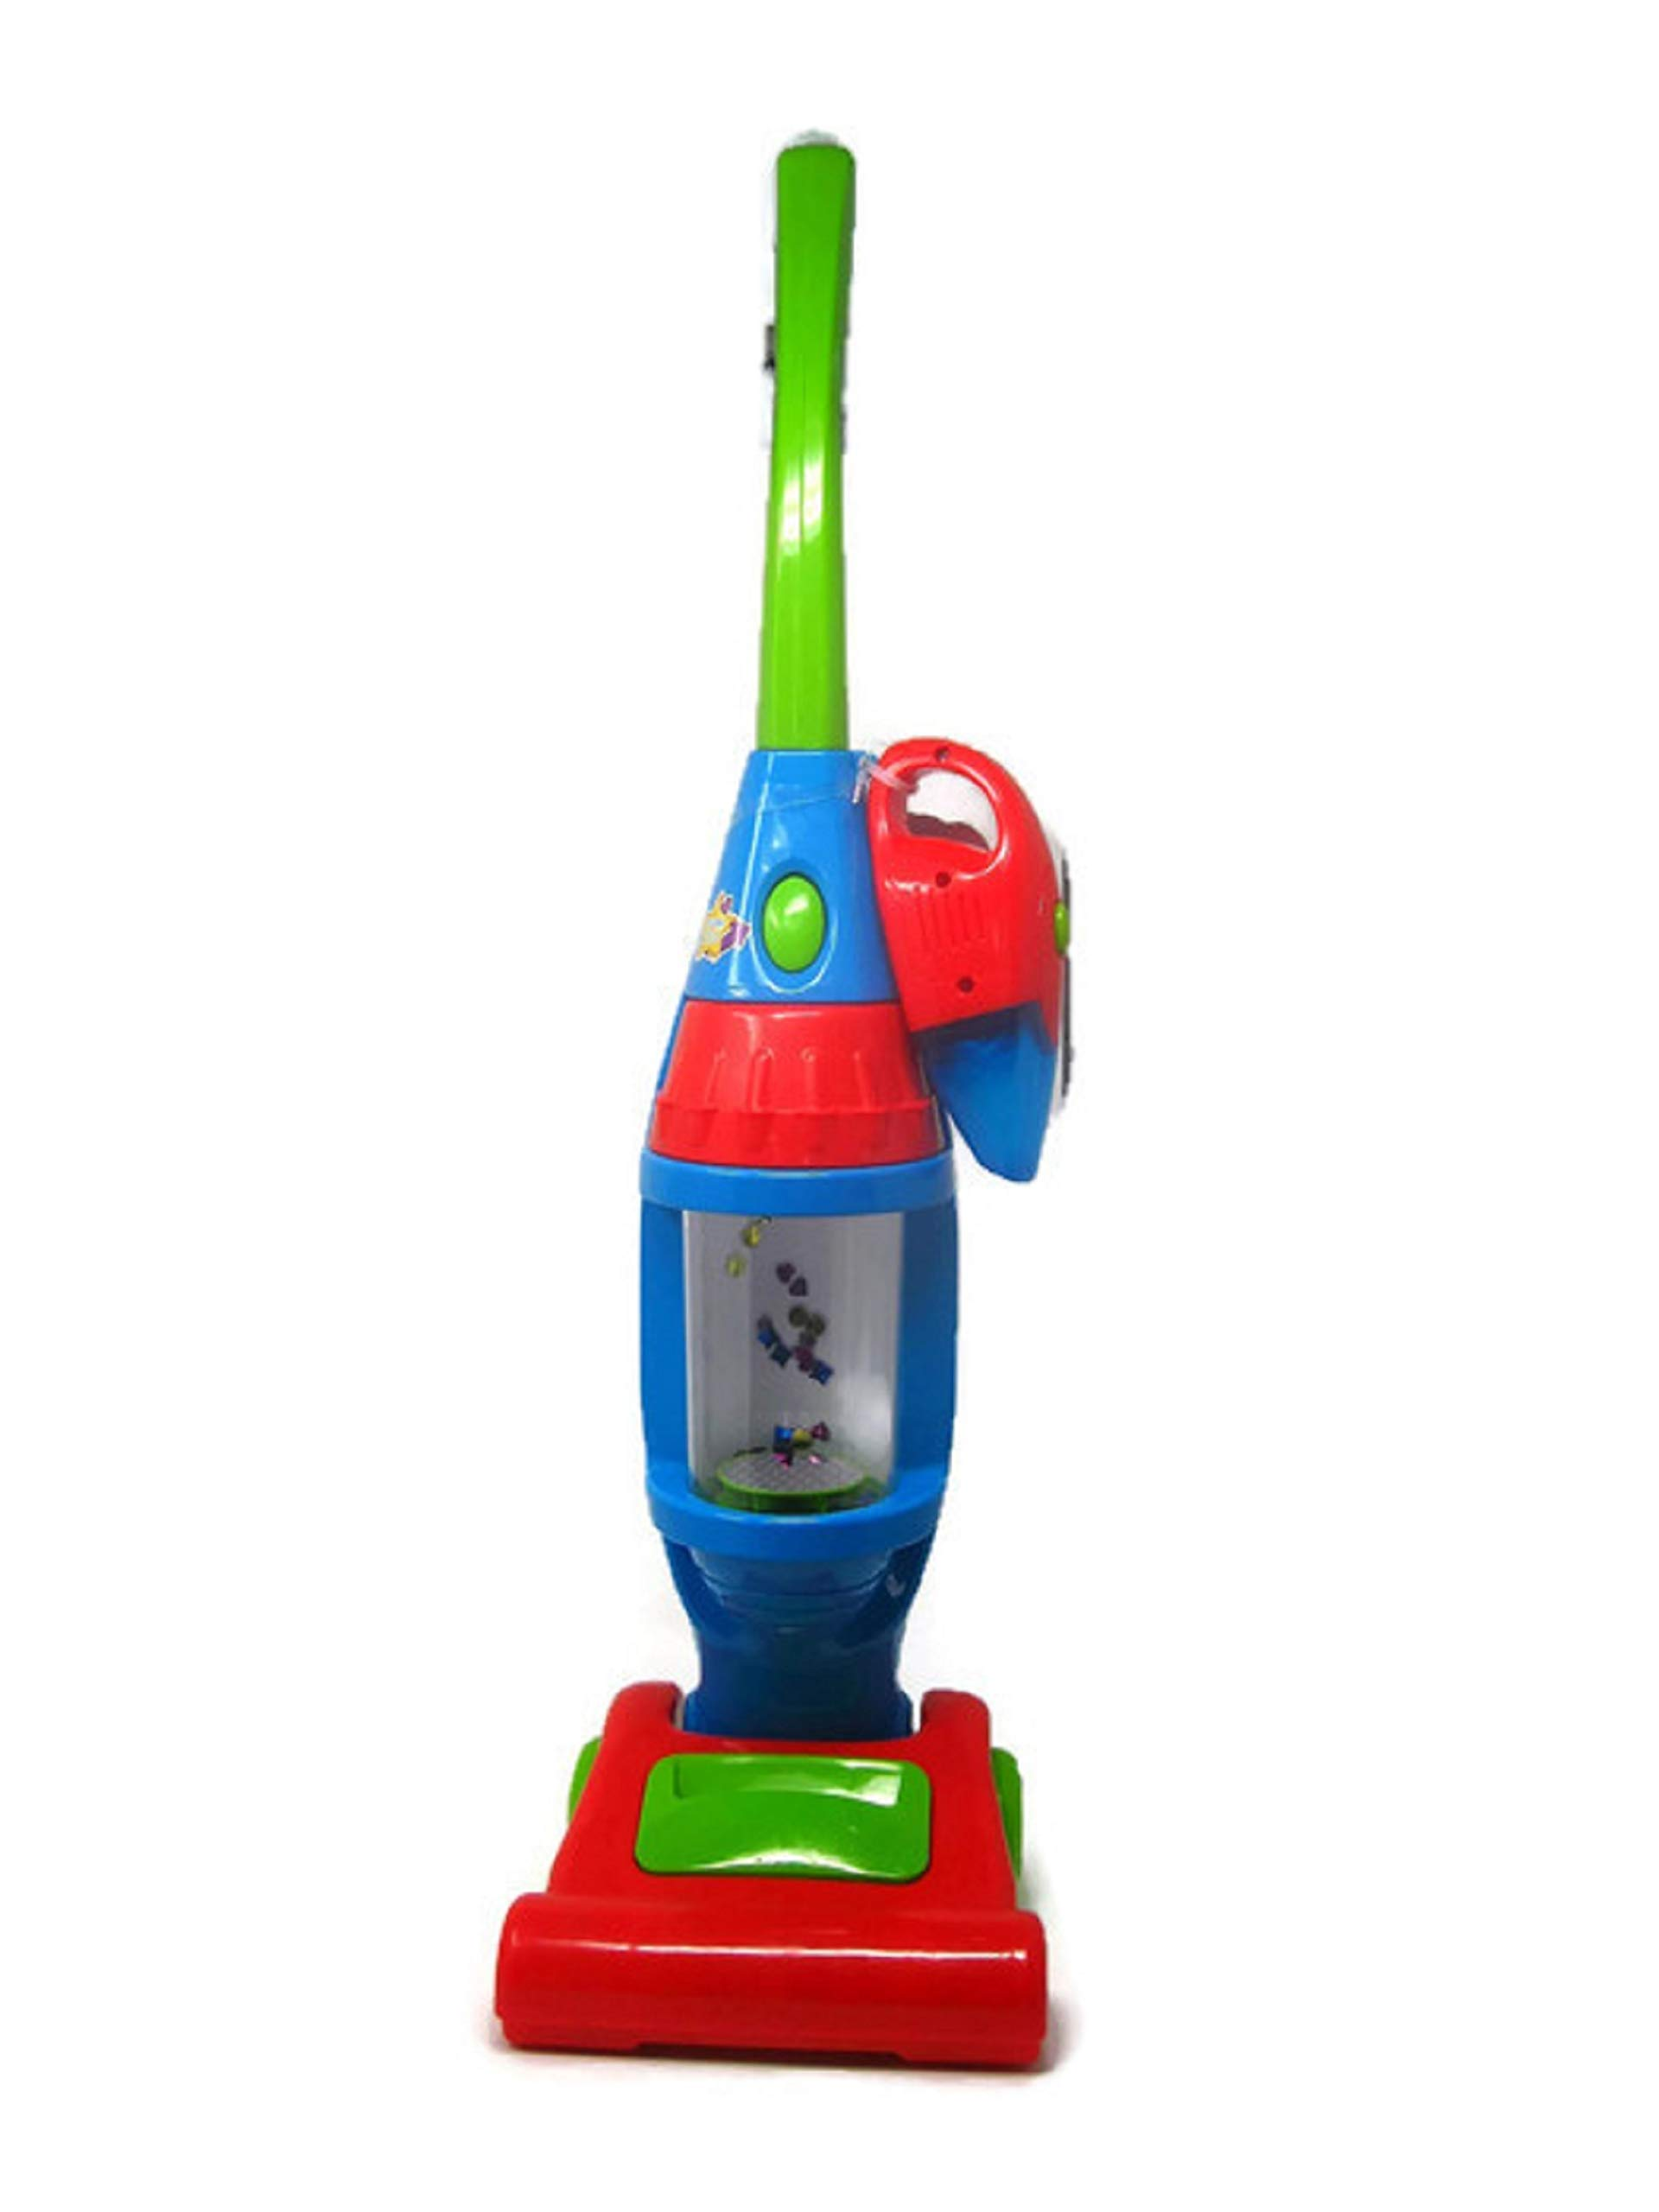 My Light Up Vacuum Cleaner Play Vac for Kid's with Dust Buster Attachment